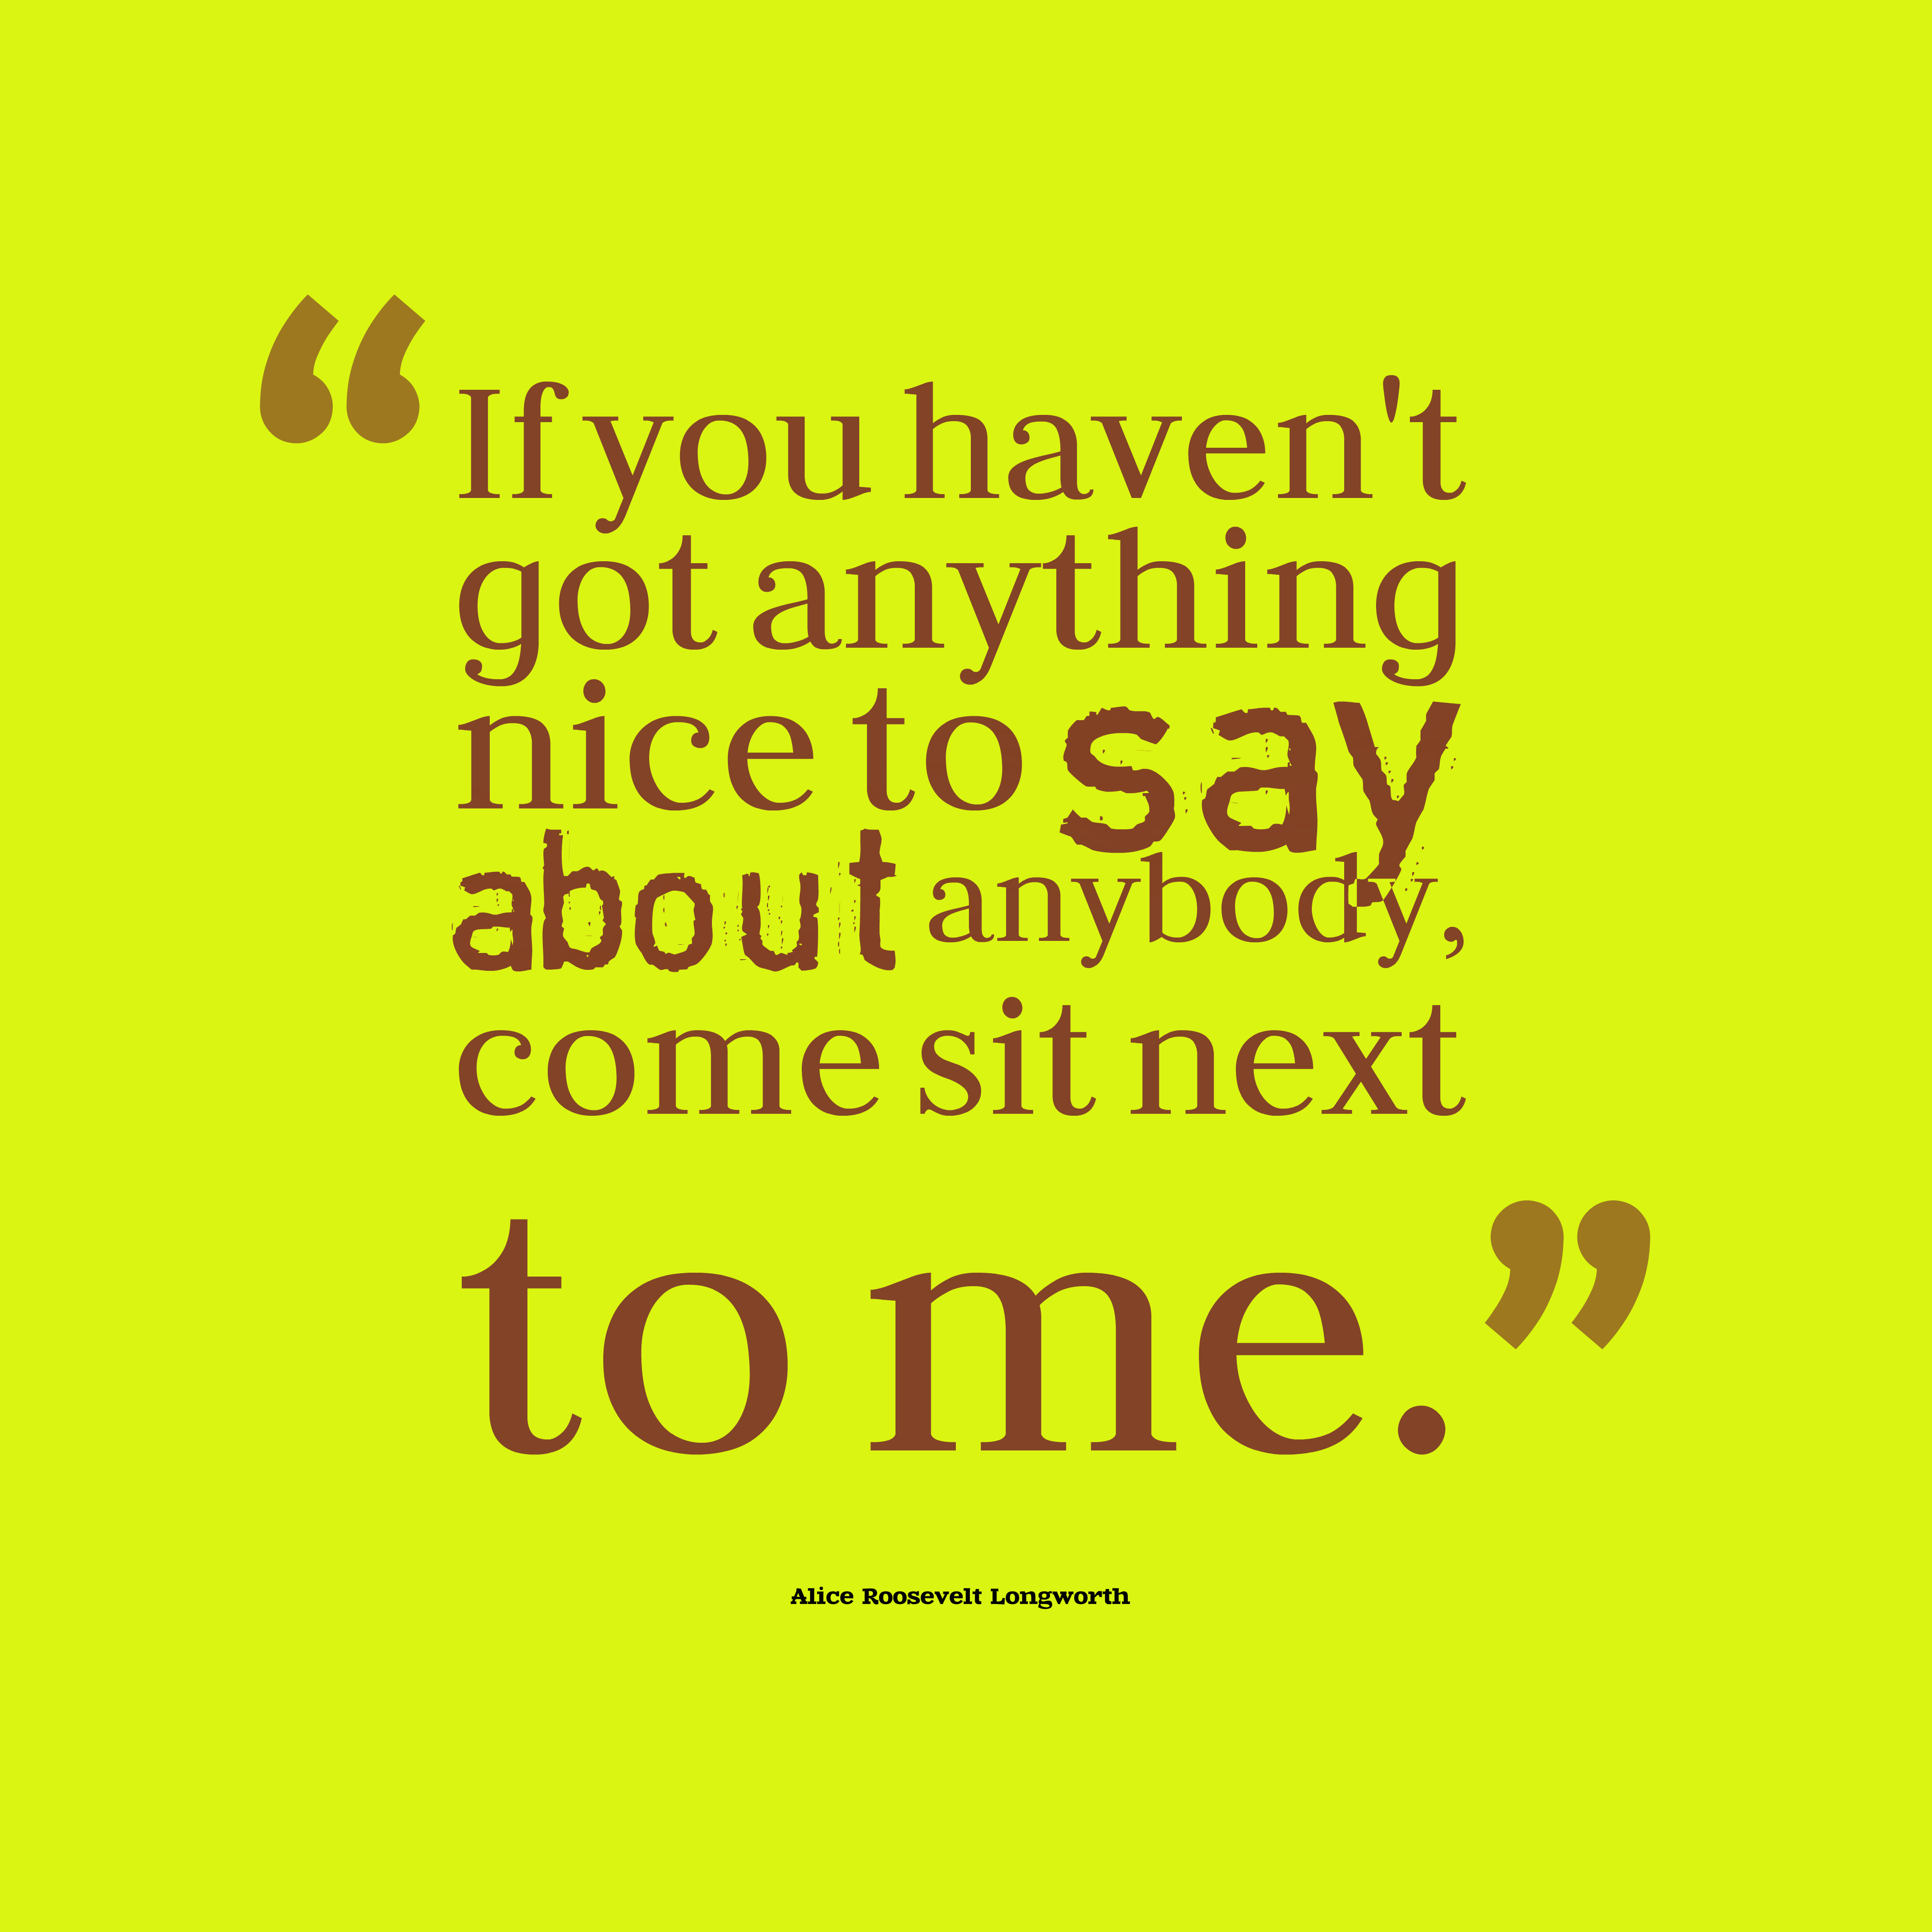 Quotes image of If you haven't got anything nice to say about anybody, come sit next to me.